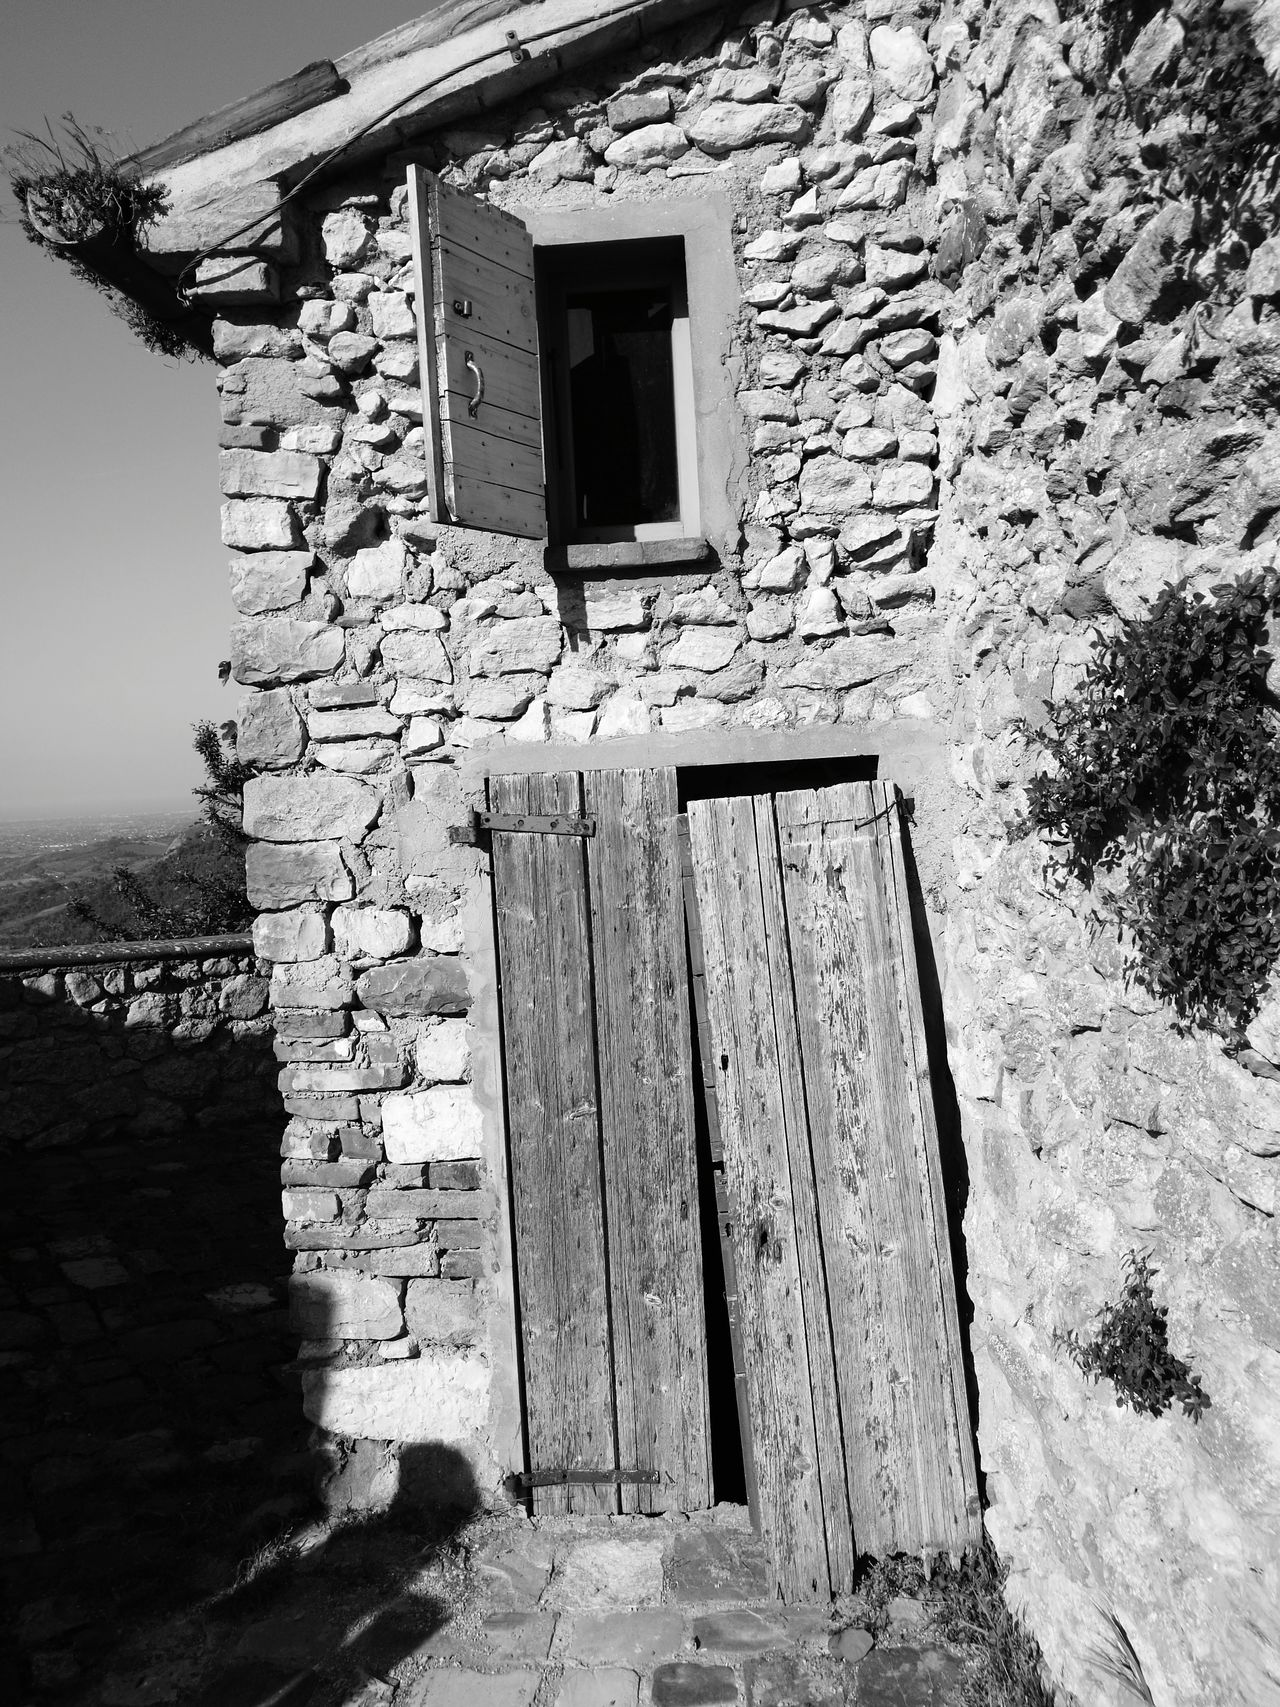 Architecture Built Structure Building Exterior Window Day No People Outdoors Low Angle View Sky Blackandwhite Montebello Azzurrina